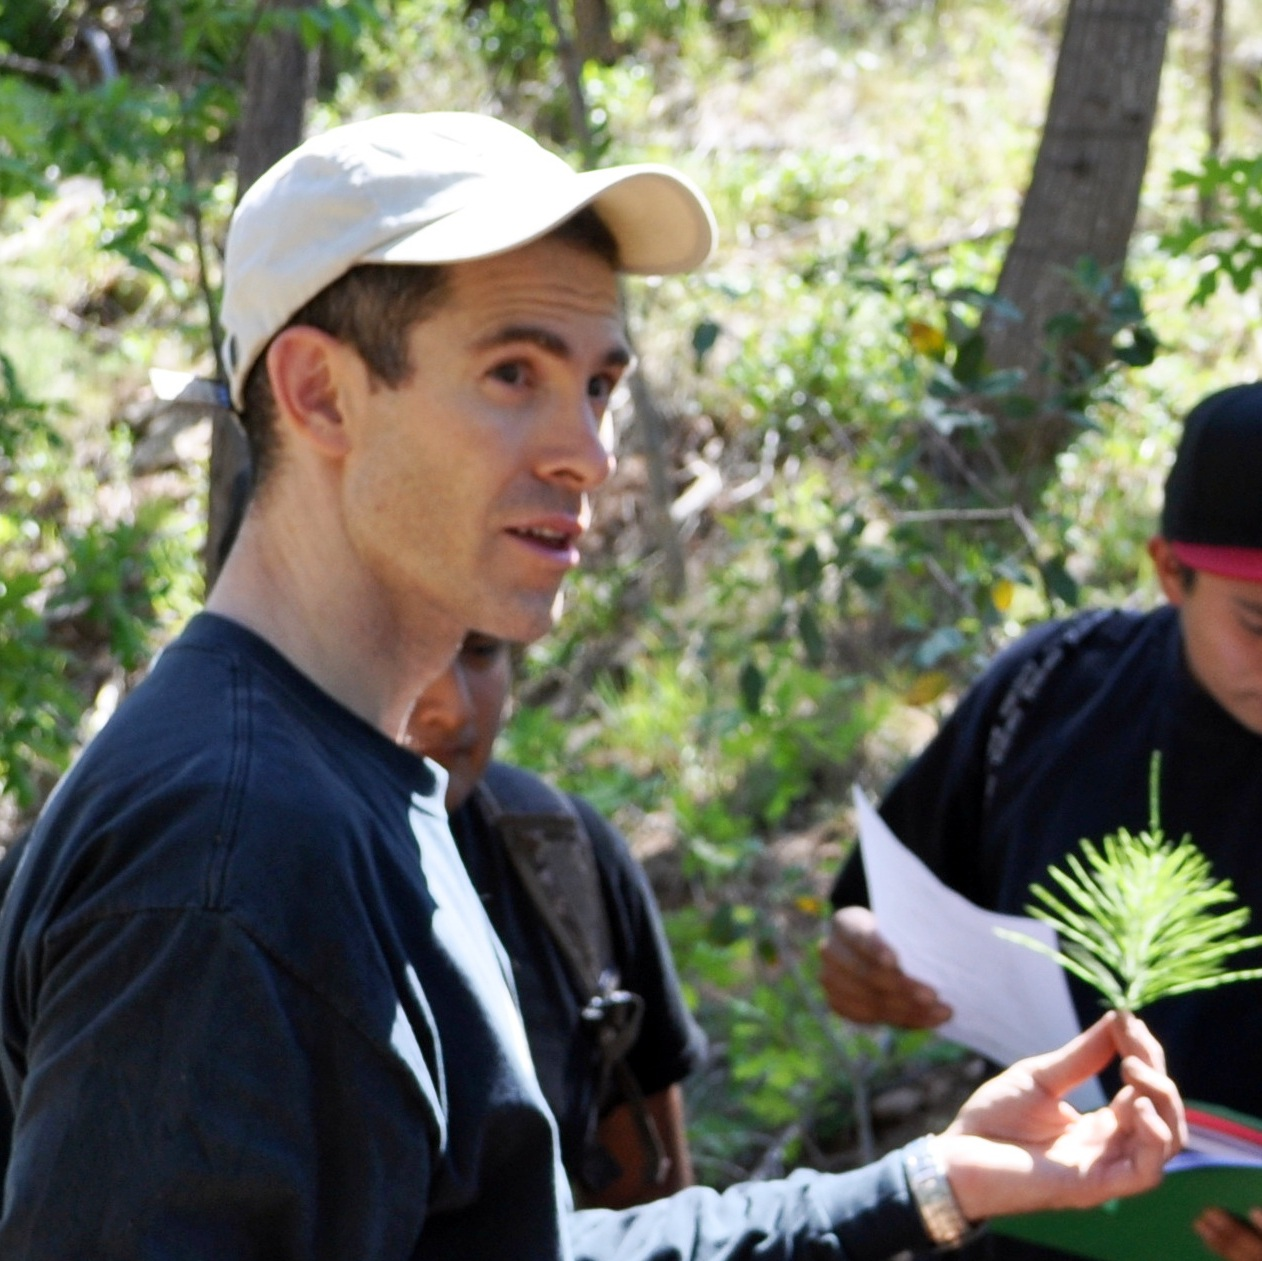 Jonathan Long Instructing On Plant Identification